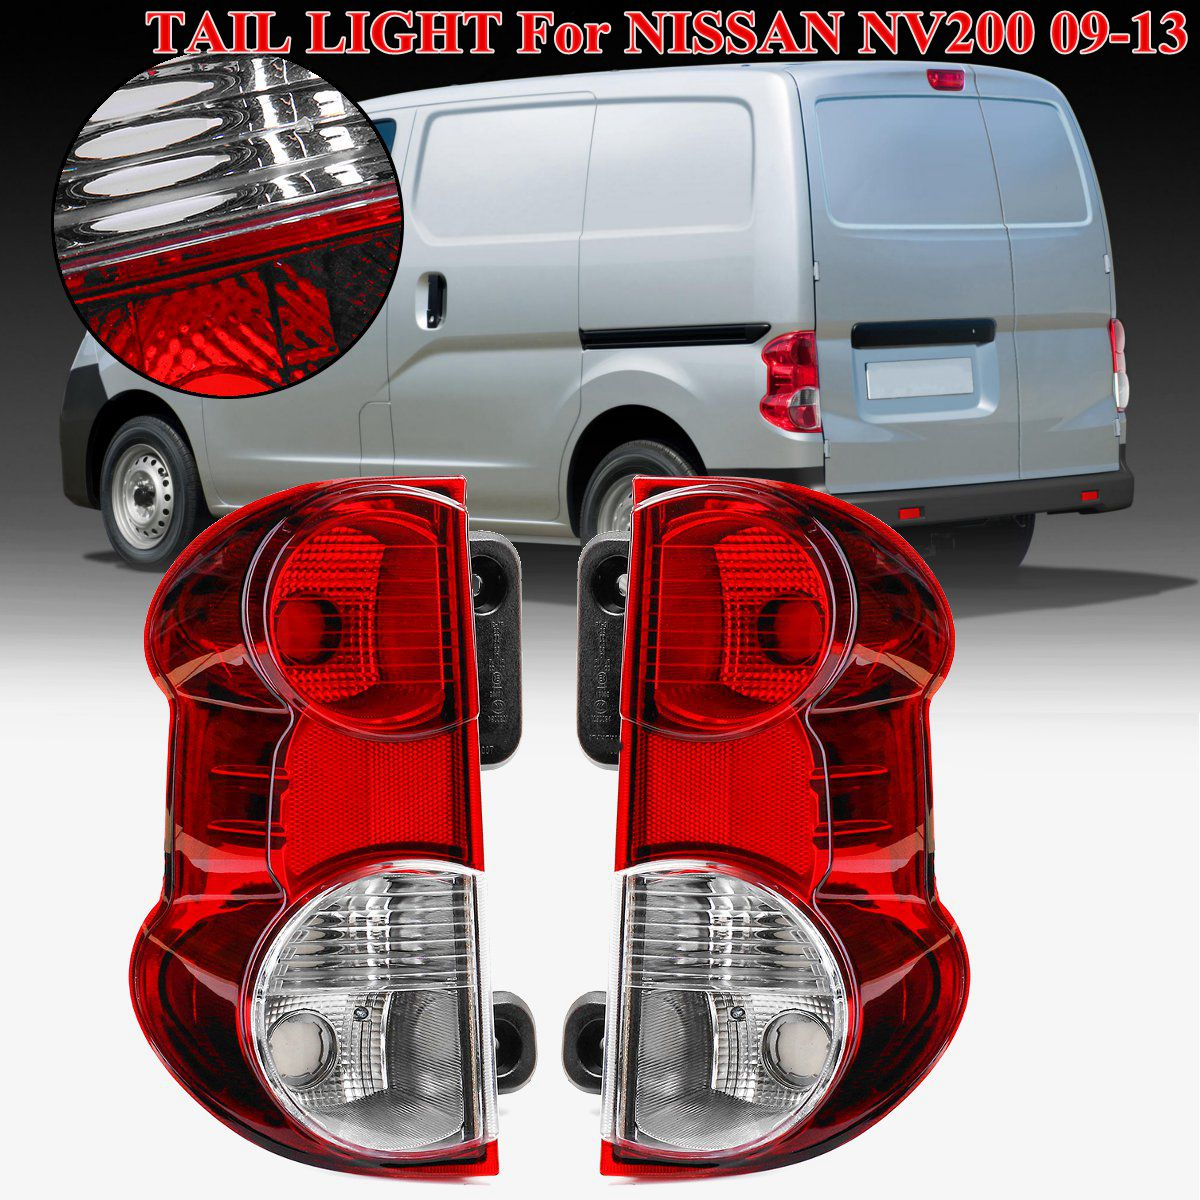 For NISSAN NV200 Tail Light Rear brake light Rear warning lamp 26550-JX00A 26555-JX31A 1Pair Red Rear Tail Light Brake Lamp rear outer brake light tail light lamp left lh for mitsubishi outlander ex 07 13 8330a395